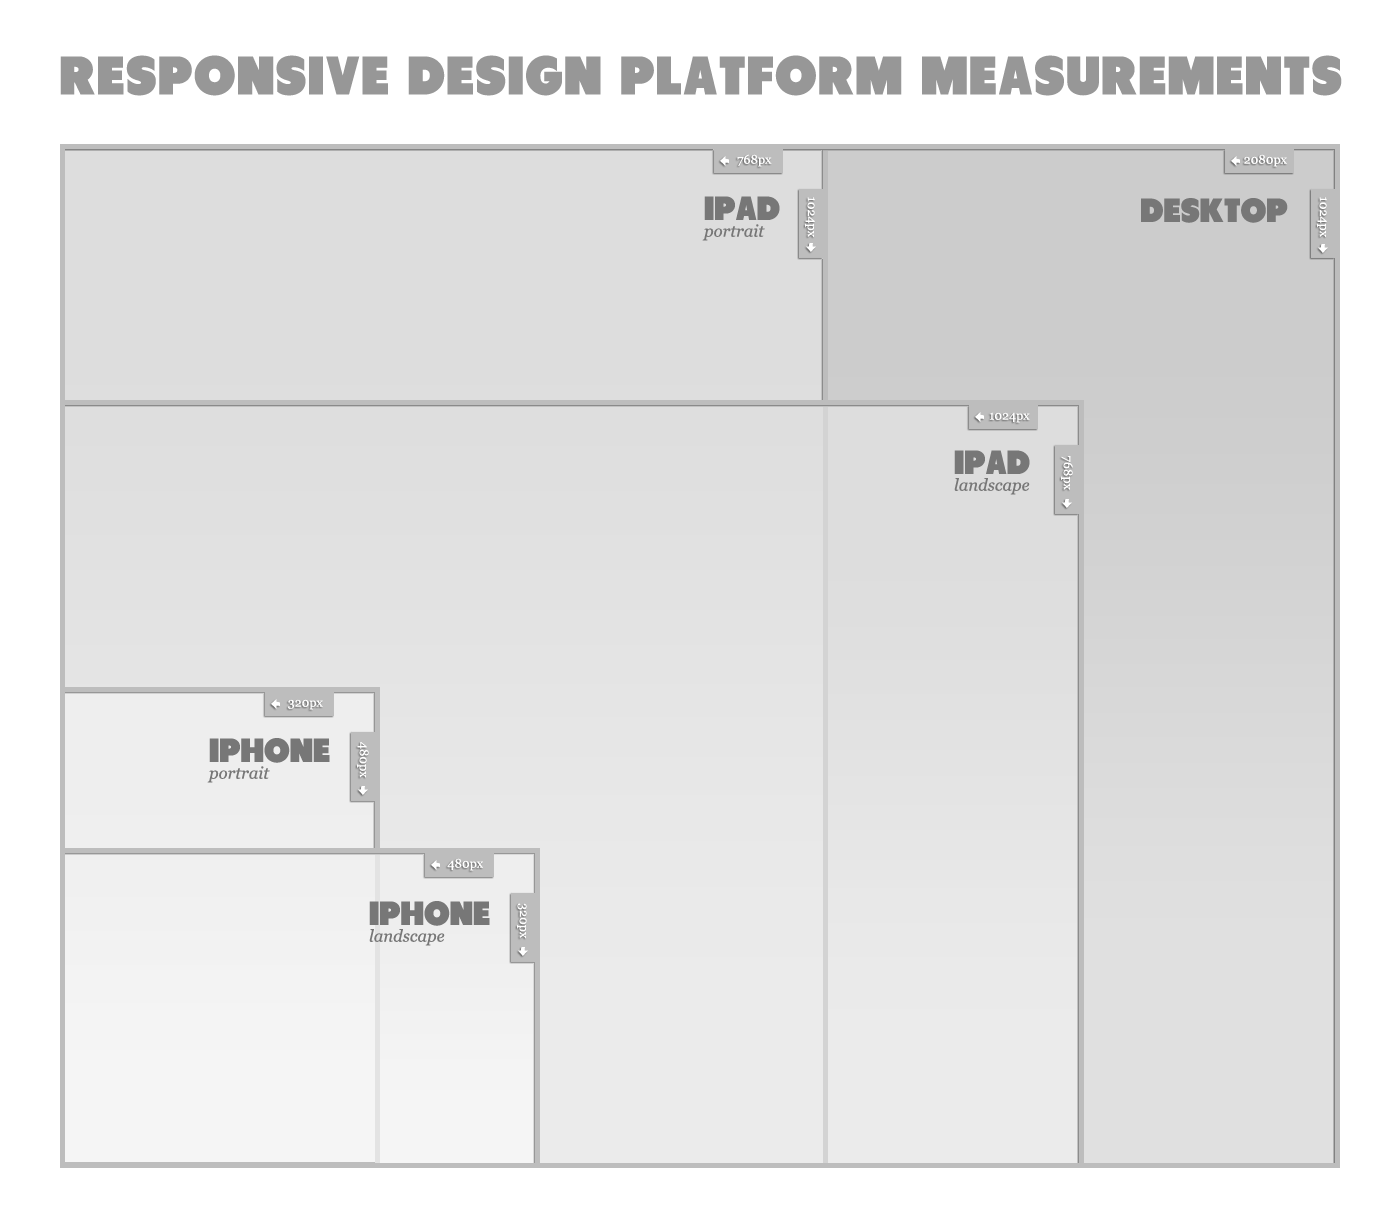 File Responsive Design Platform Measurements Png Wikimedia Commons